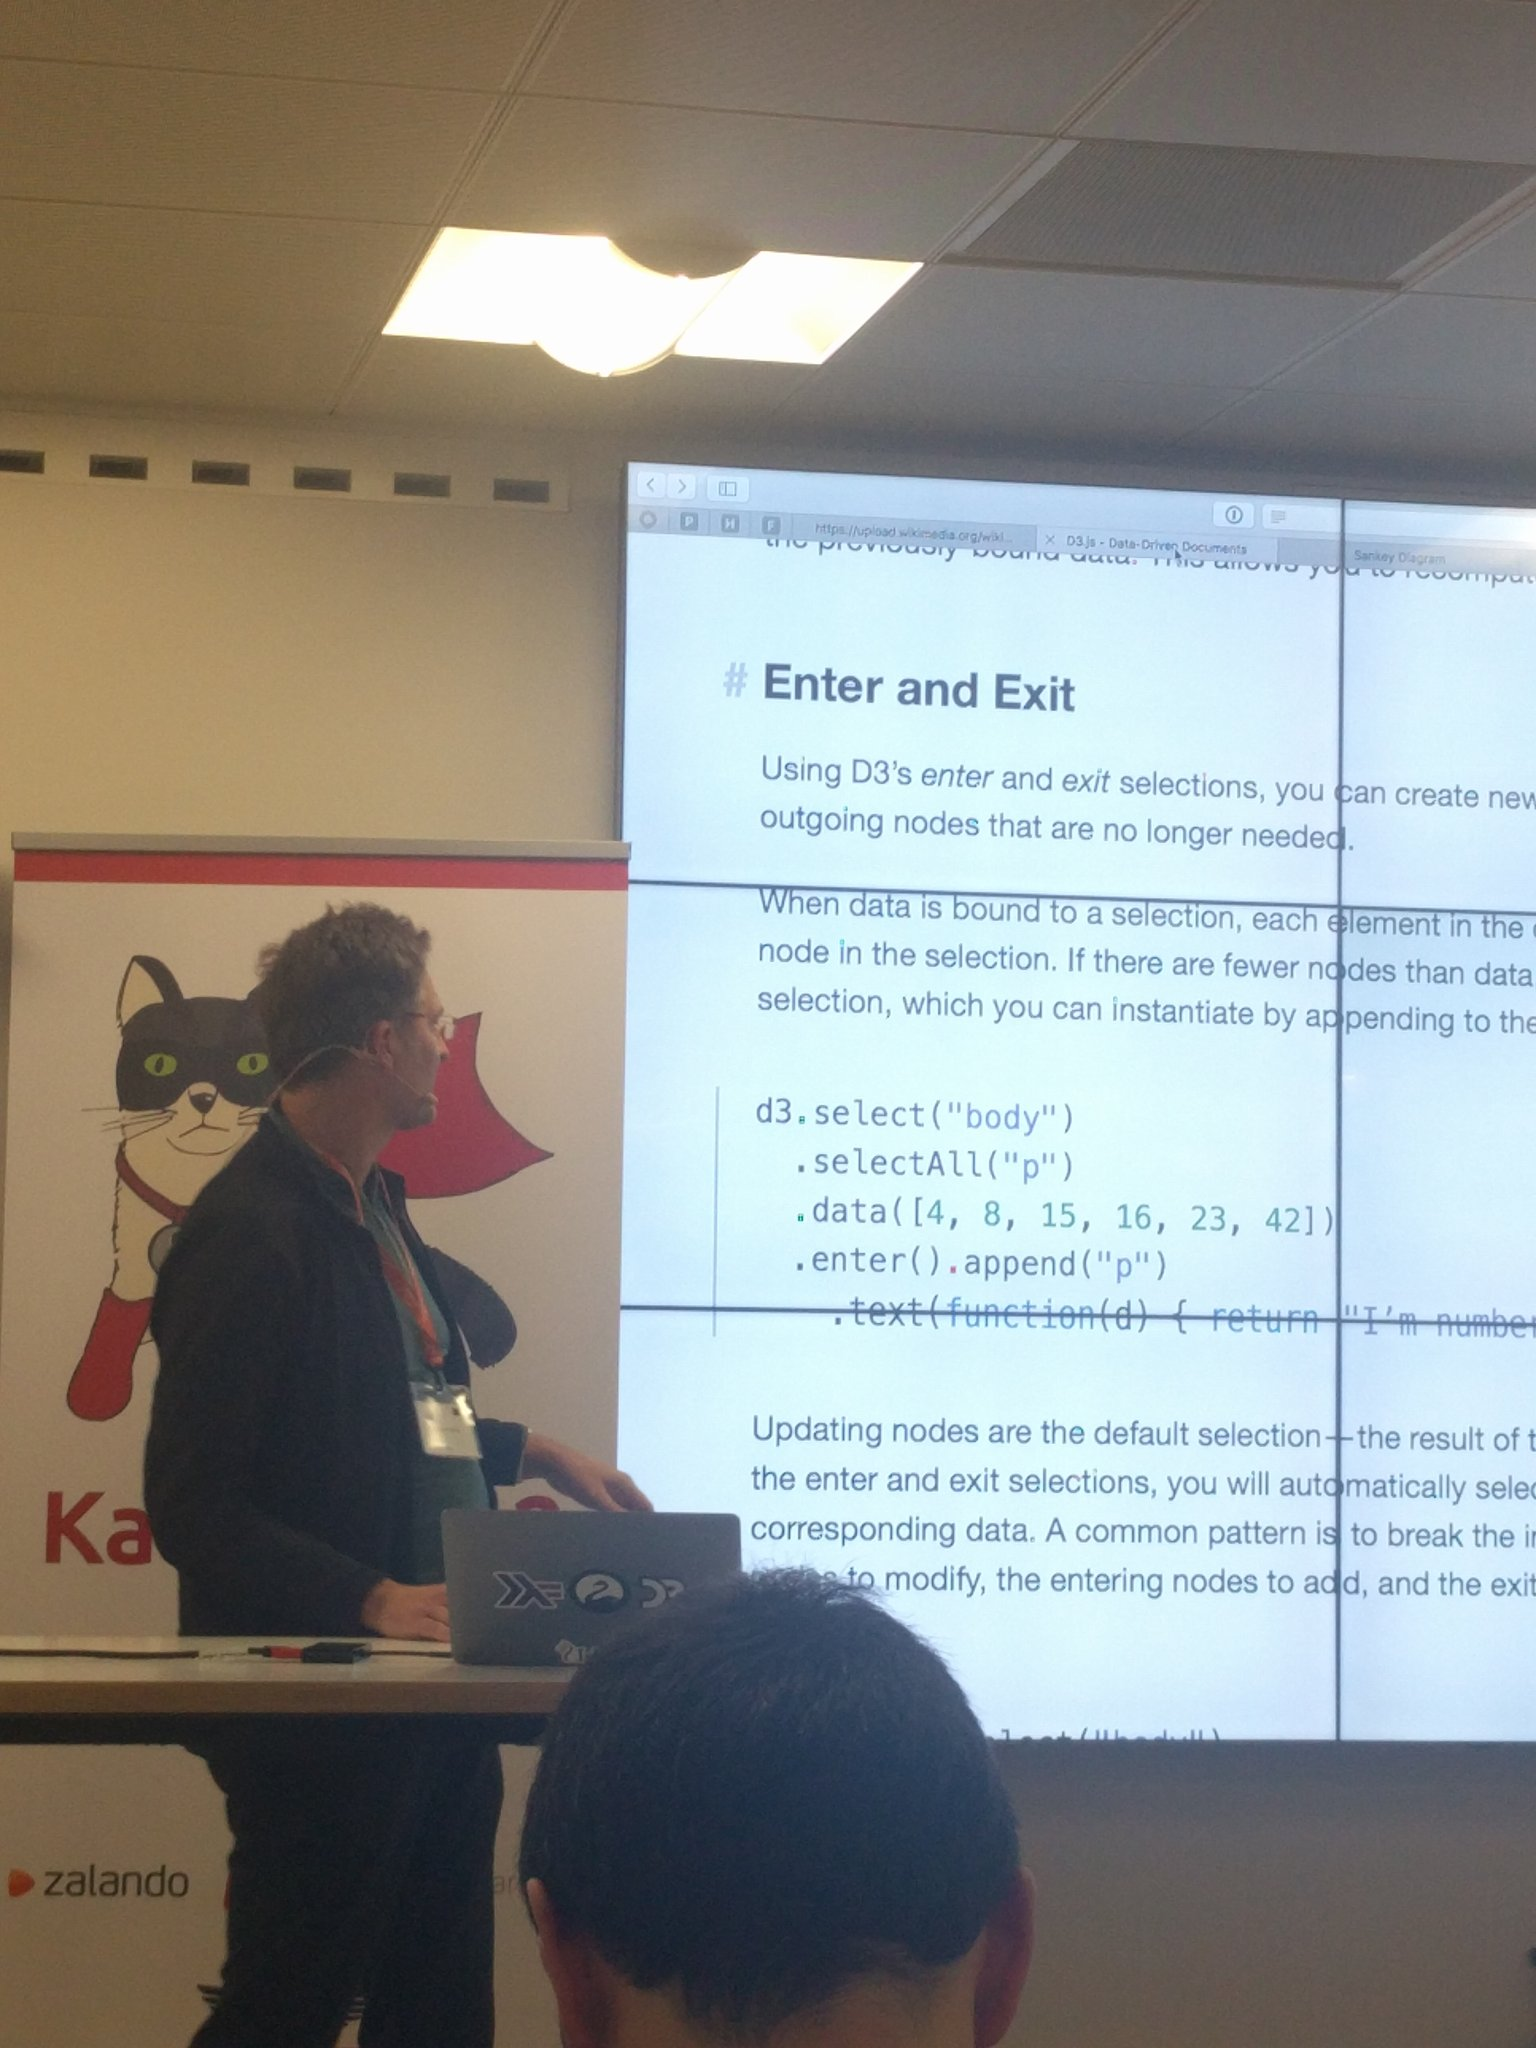 @afcondon showing his work on PureScript and D3 at #KatsConf2 👌 https://t.co/O586z8Tjtw